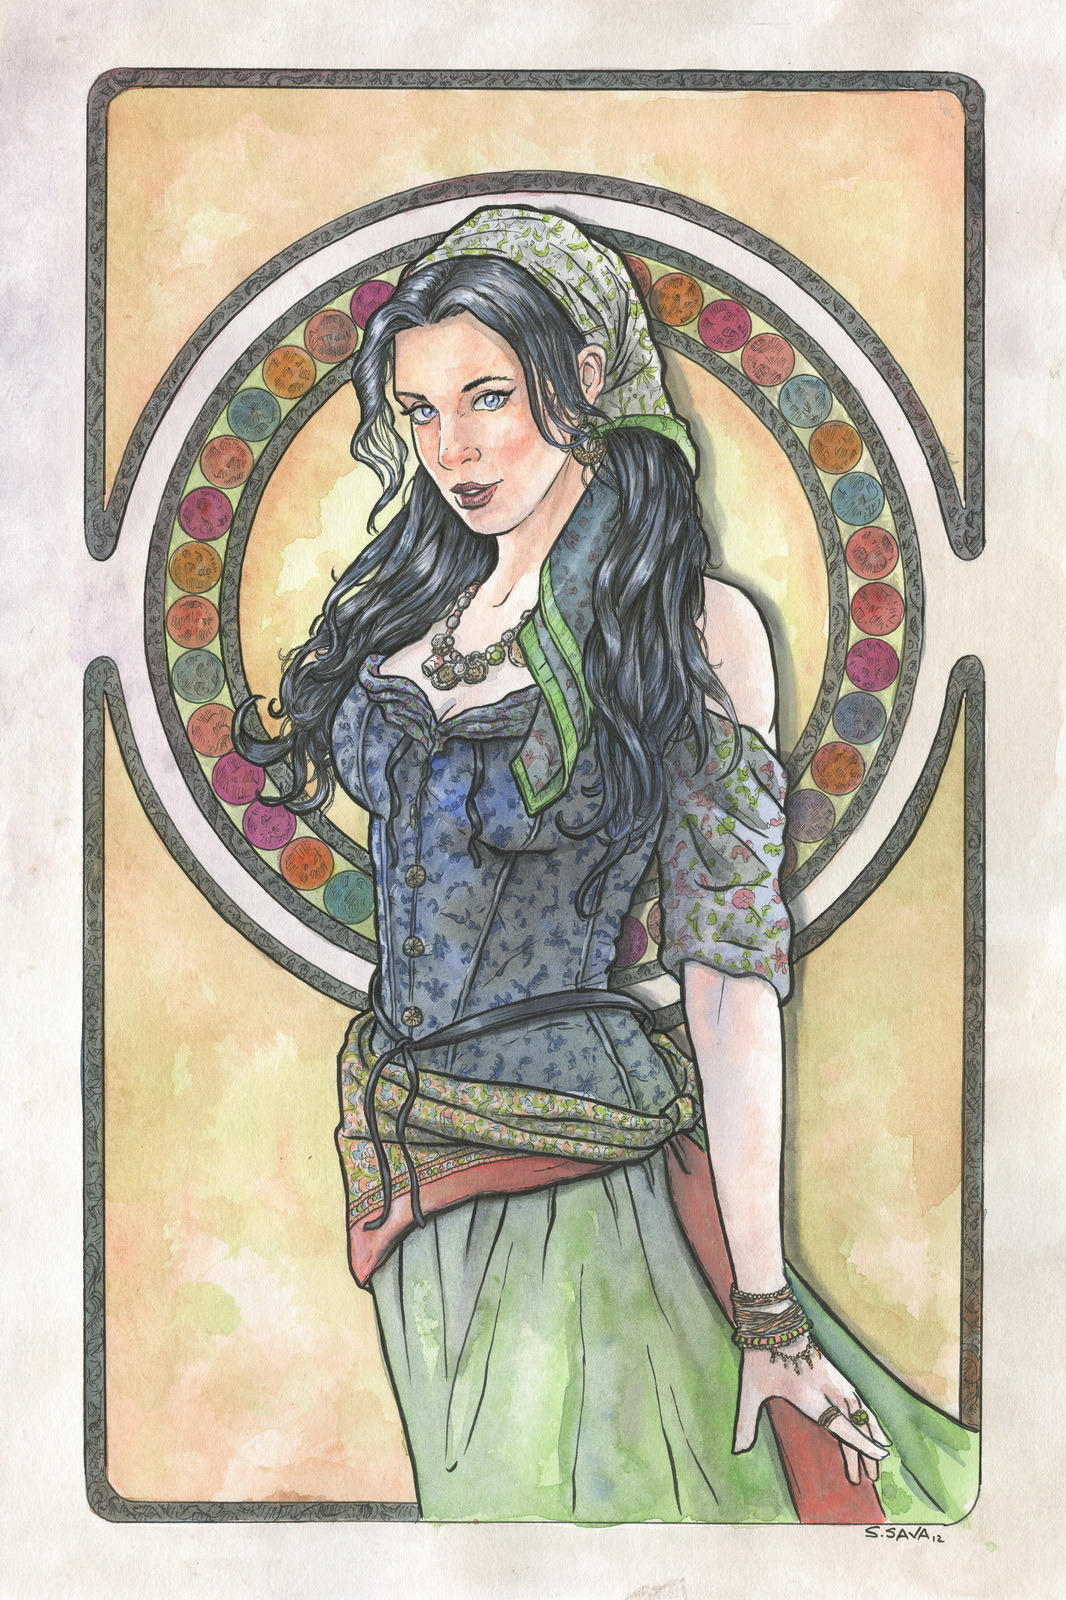 This is the 10th Art Nouveau/Alphonse Mucha inspired watercolor painting I've done this year. The painting is on 12x18 Canson watercolor paper. Done in watercolors and ink. Photo reference/inspiration can be seen here… http://faestock.deviantart.com/gallery/?offset=288#/d57o5tz Original paintings can be purchased here… http://www.etsy.com/shop/ScottChristianSava?section_id=11821287 and Limited Edition Prints can be purchased here… http://www.etsy.com/shop/ScottChristianSava?section_id=11821297 Thanks for looking! Scott